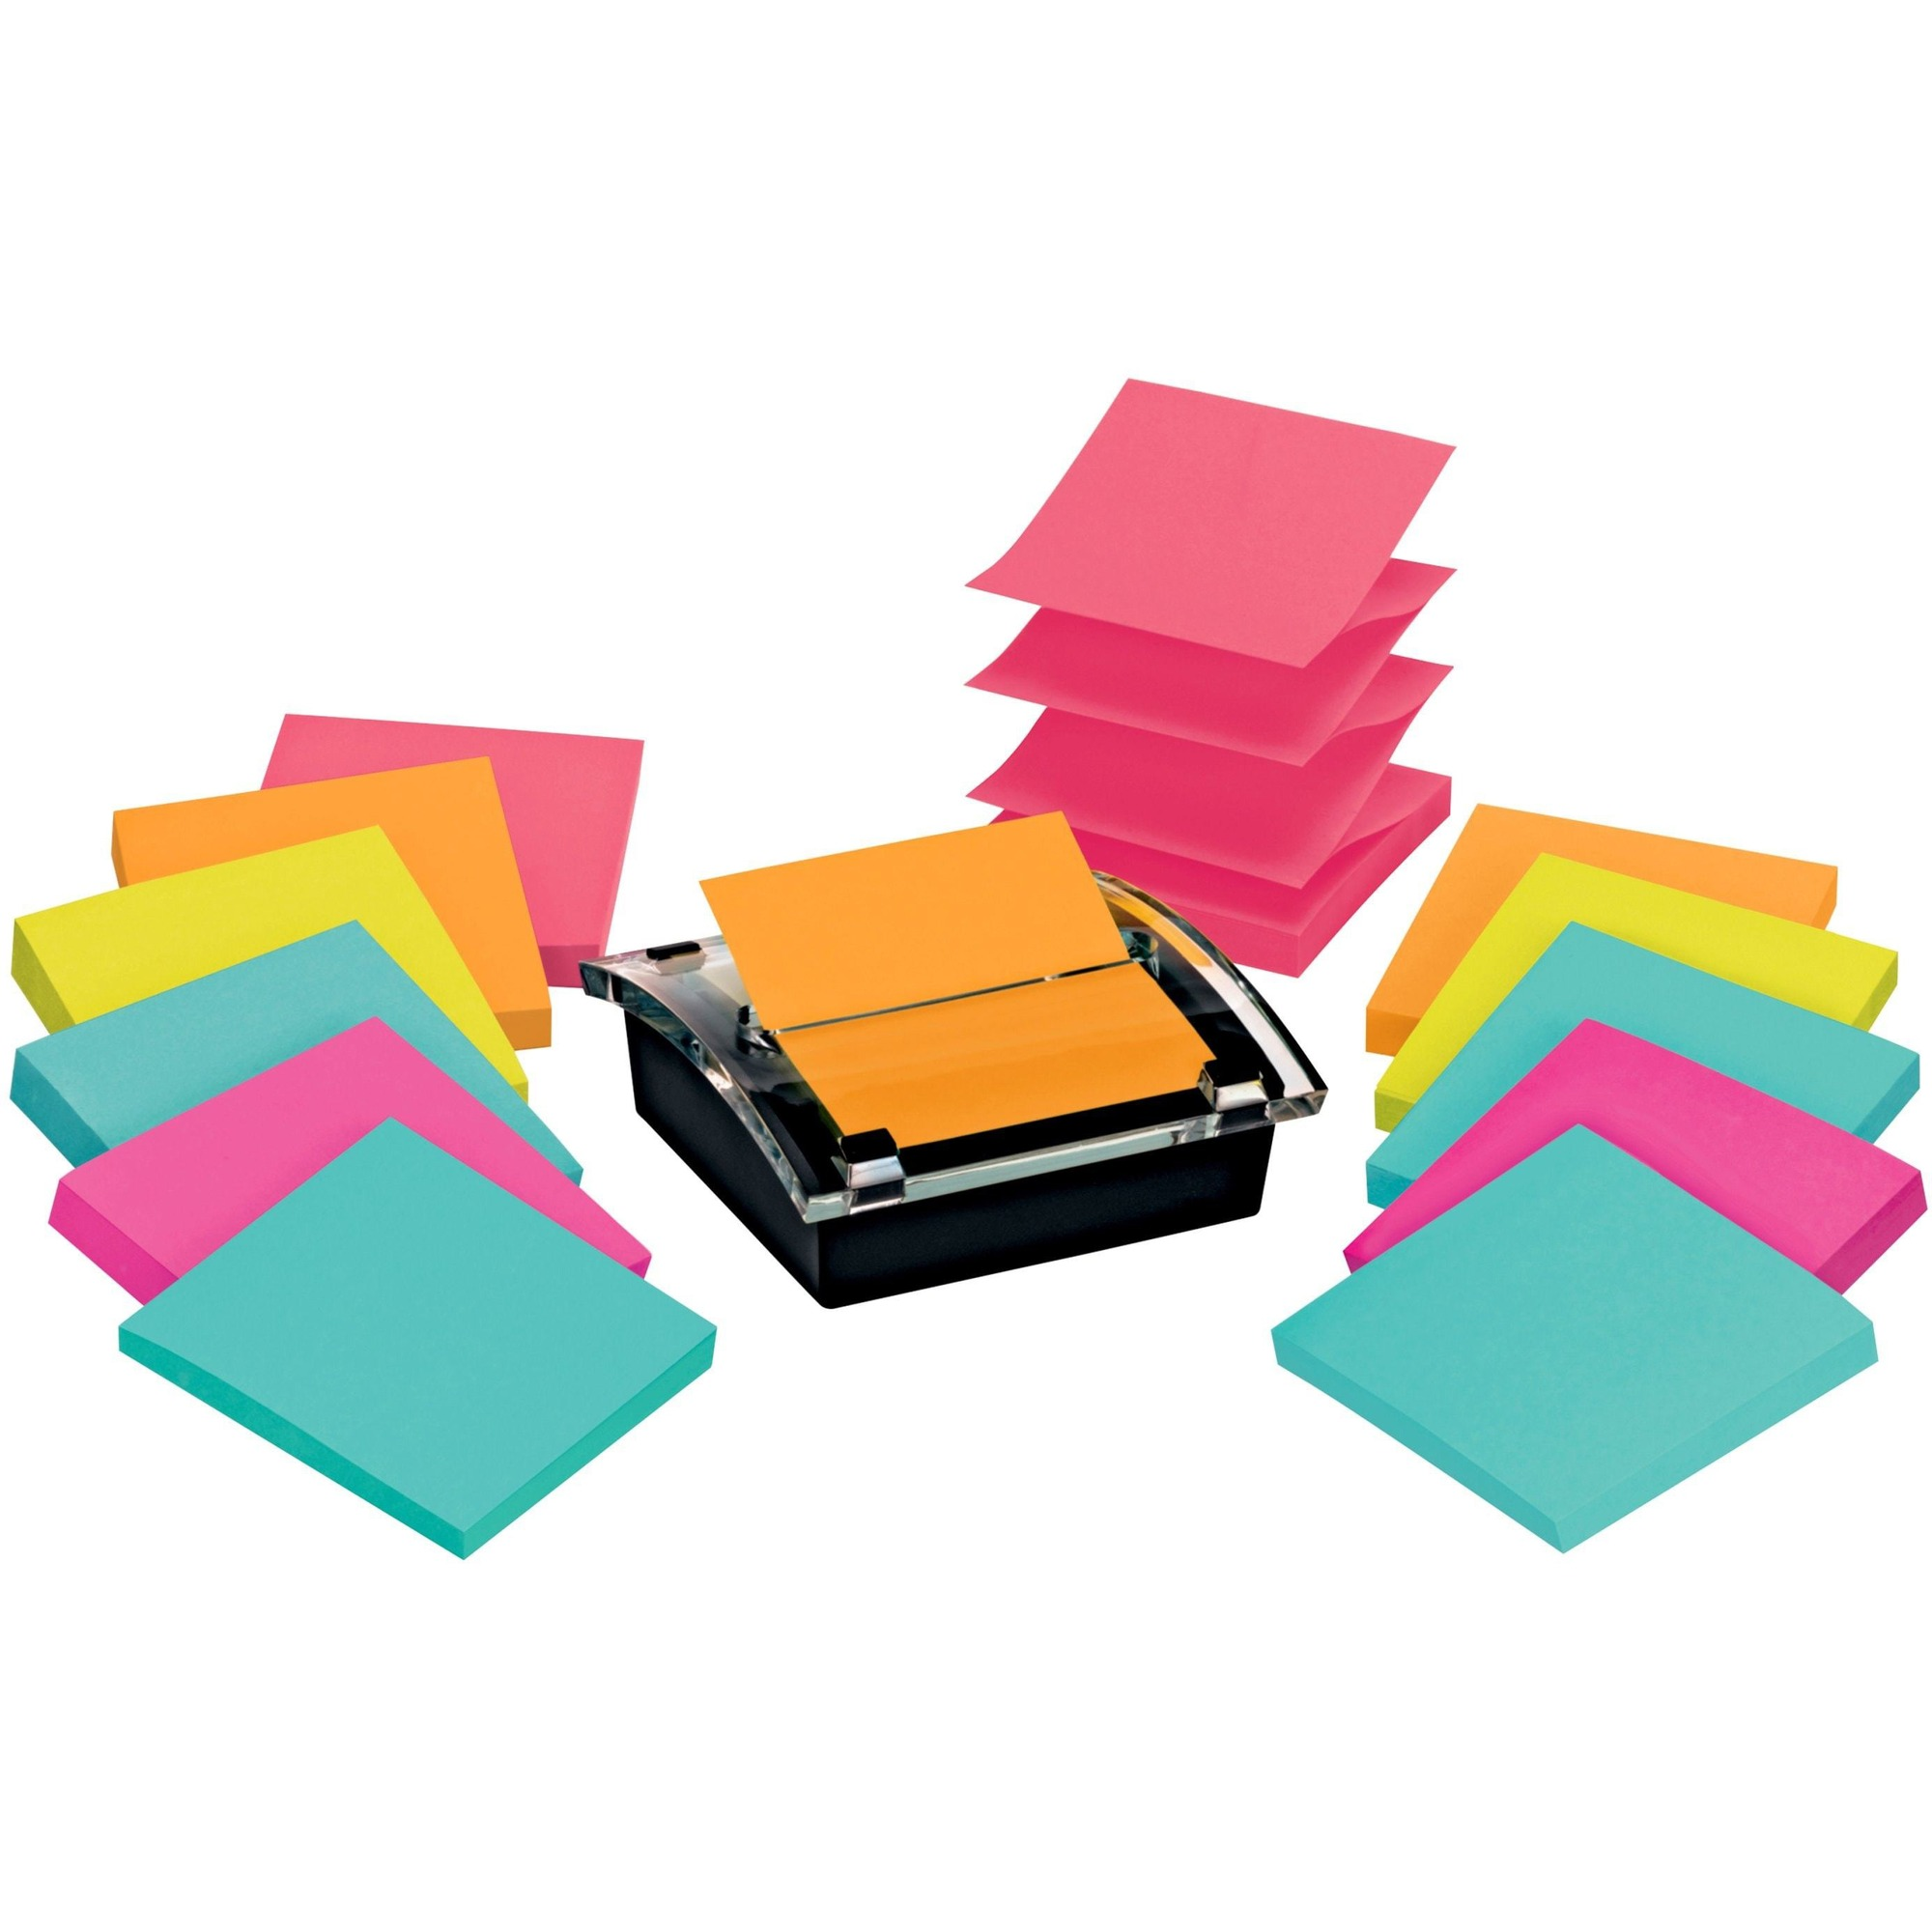 3M Post-it® Super Sticky Pop-up Notes Dispenser, 3X 3 - 1080 - 3 X 3 - Square - 90 Sheets Per Pad - Unruled - Assorted - Paper - Self-adhesive - 1 Pack